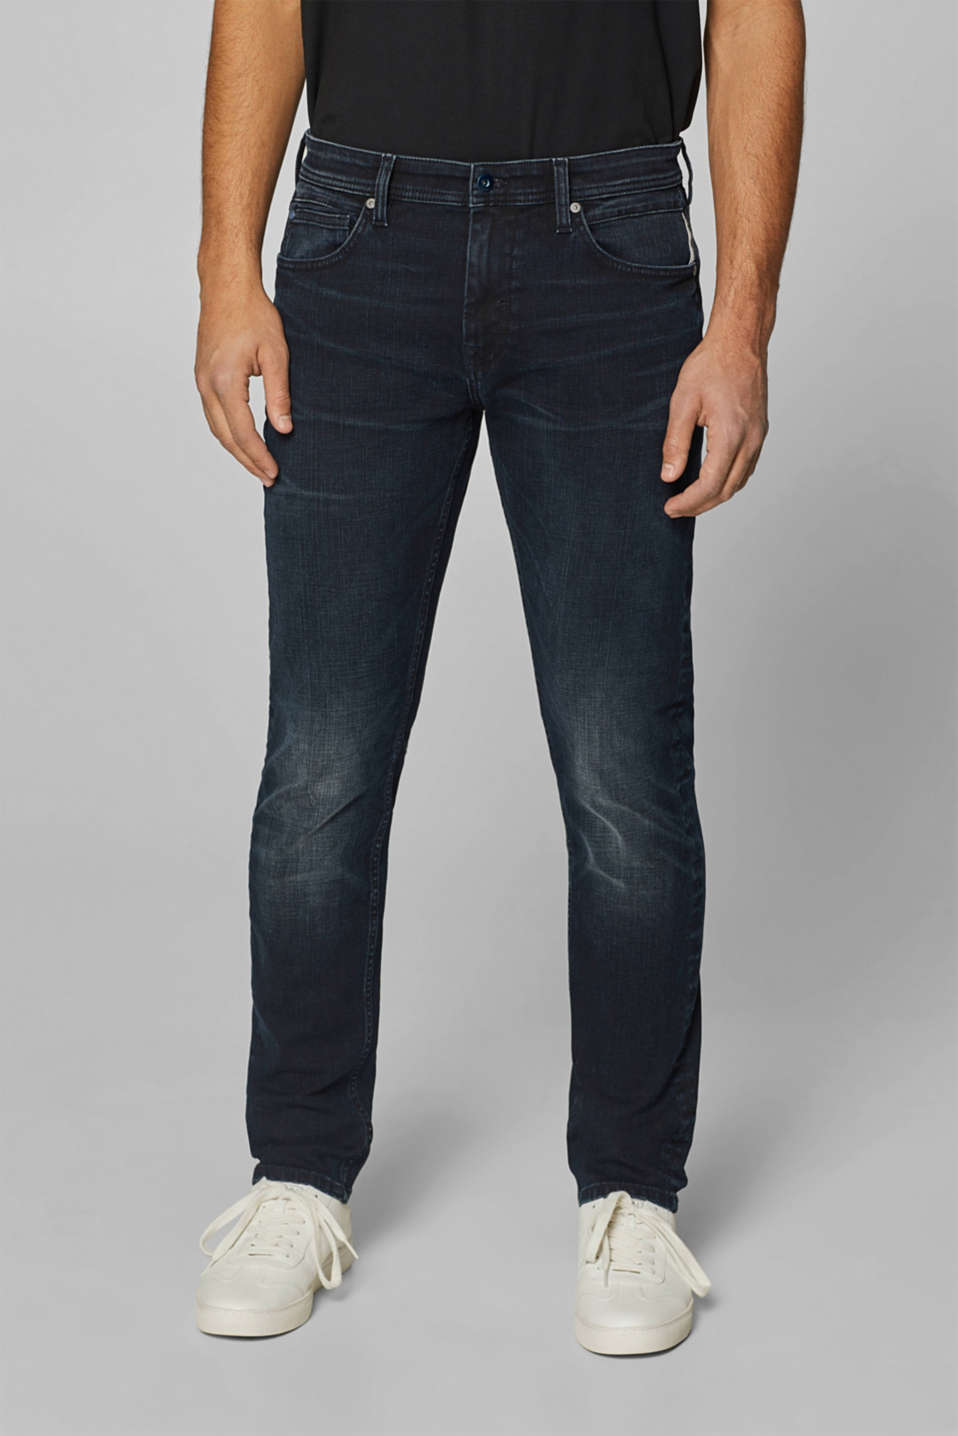 edc - Jeans met superstretch en organic cotton